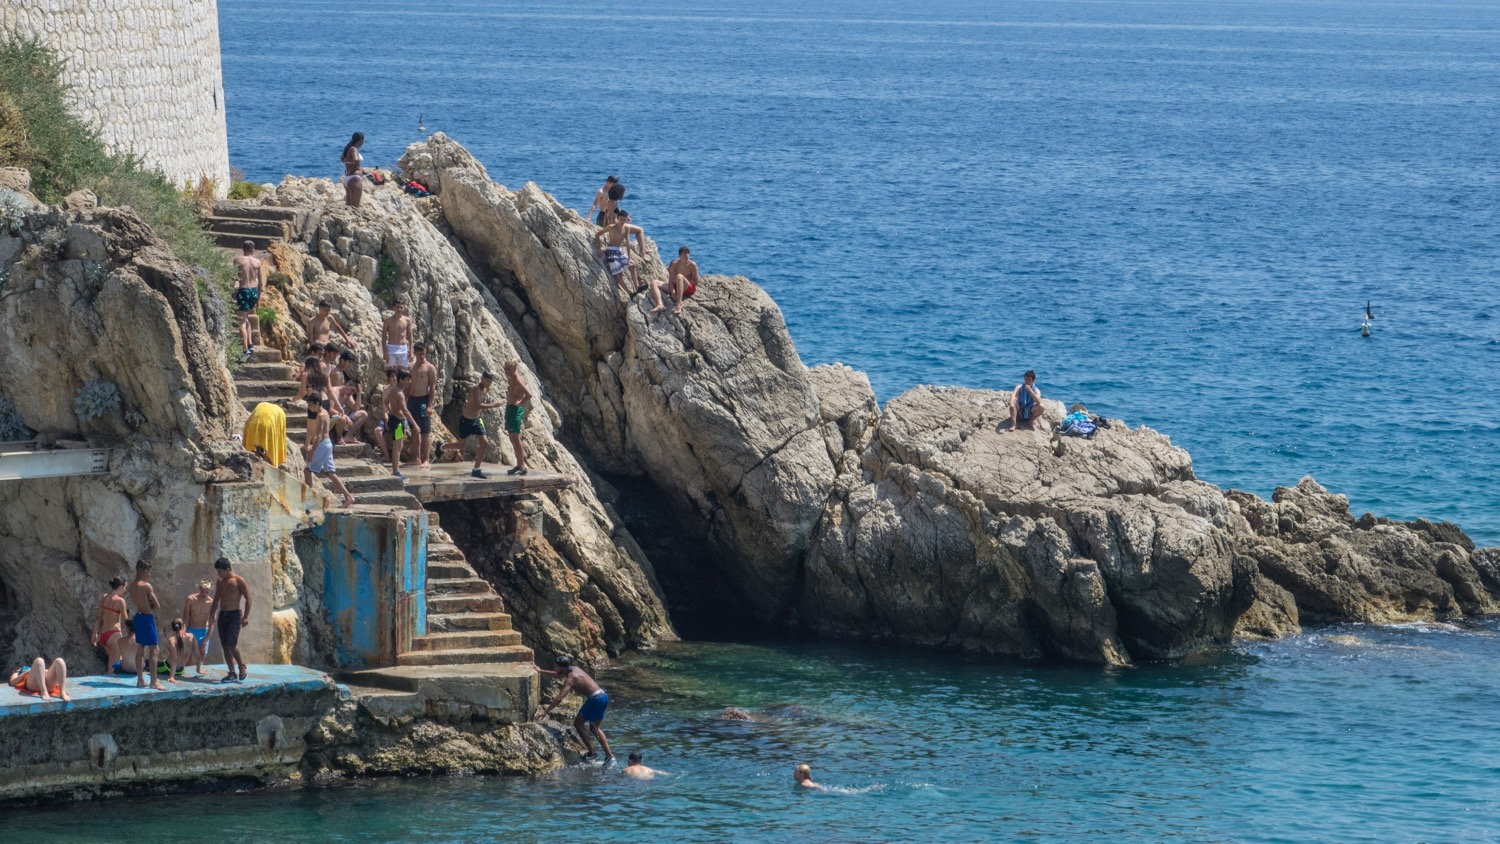 There were lots of people showing off their cliff diving skills